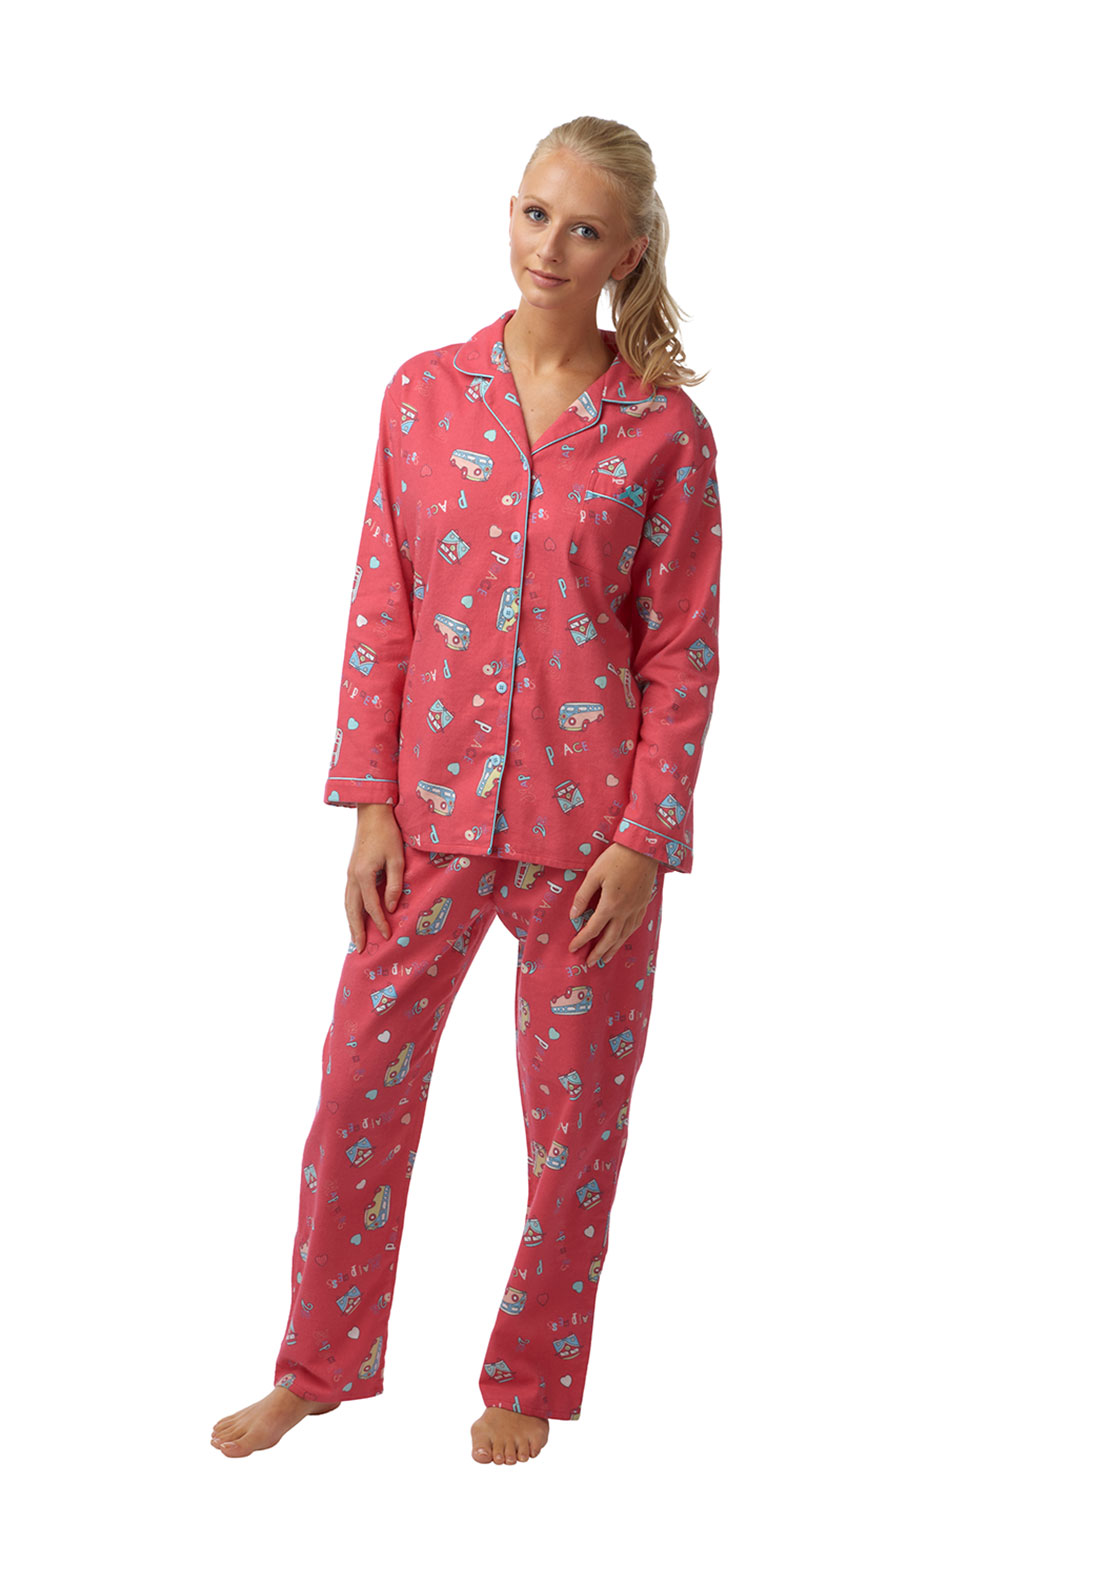 Indigo Sky Campervan Print Brushed Cotton Pyjama Set, Coral